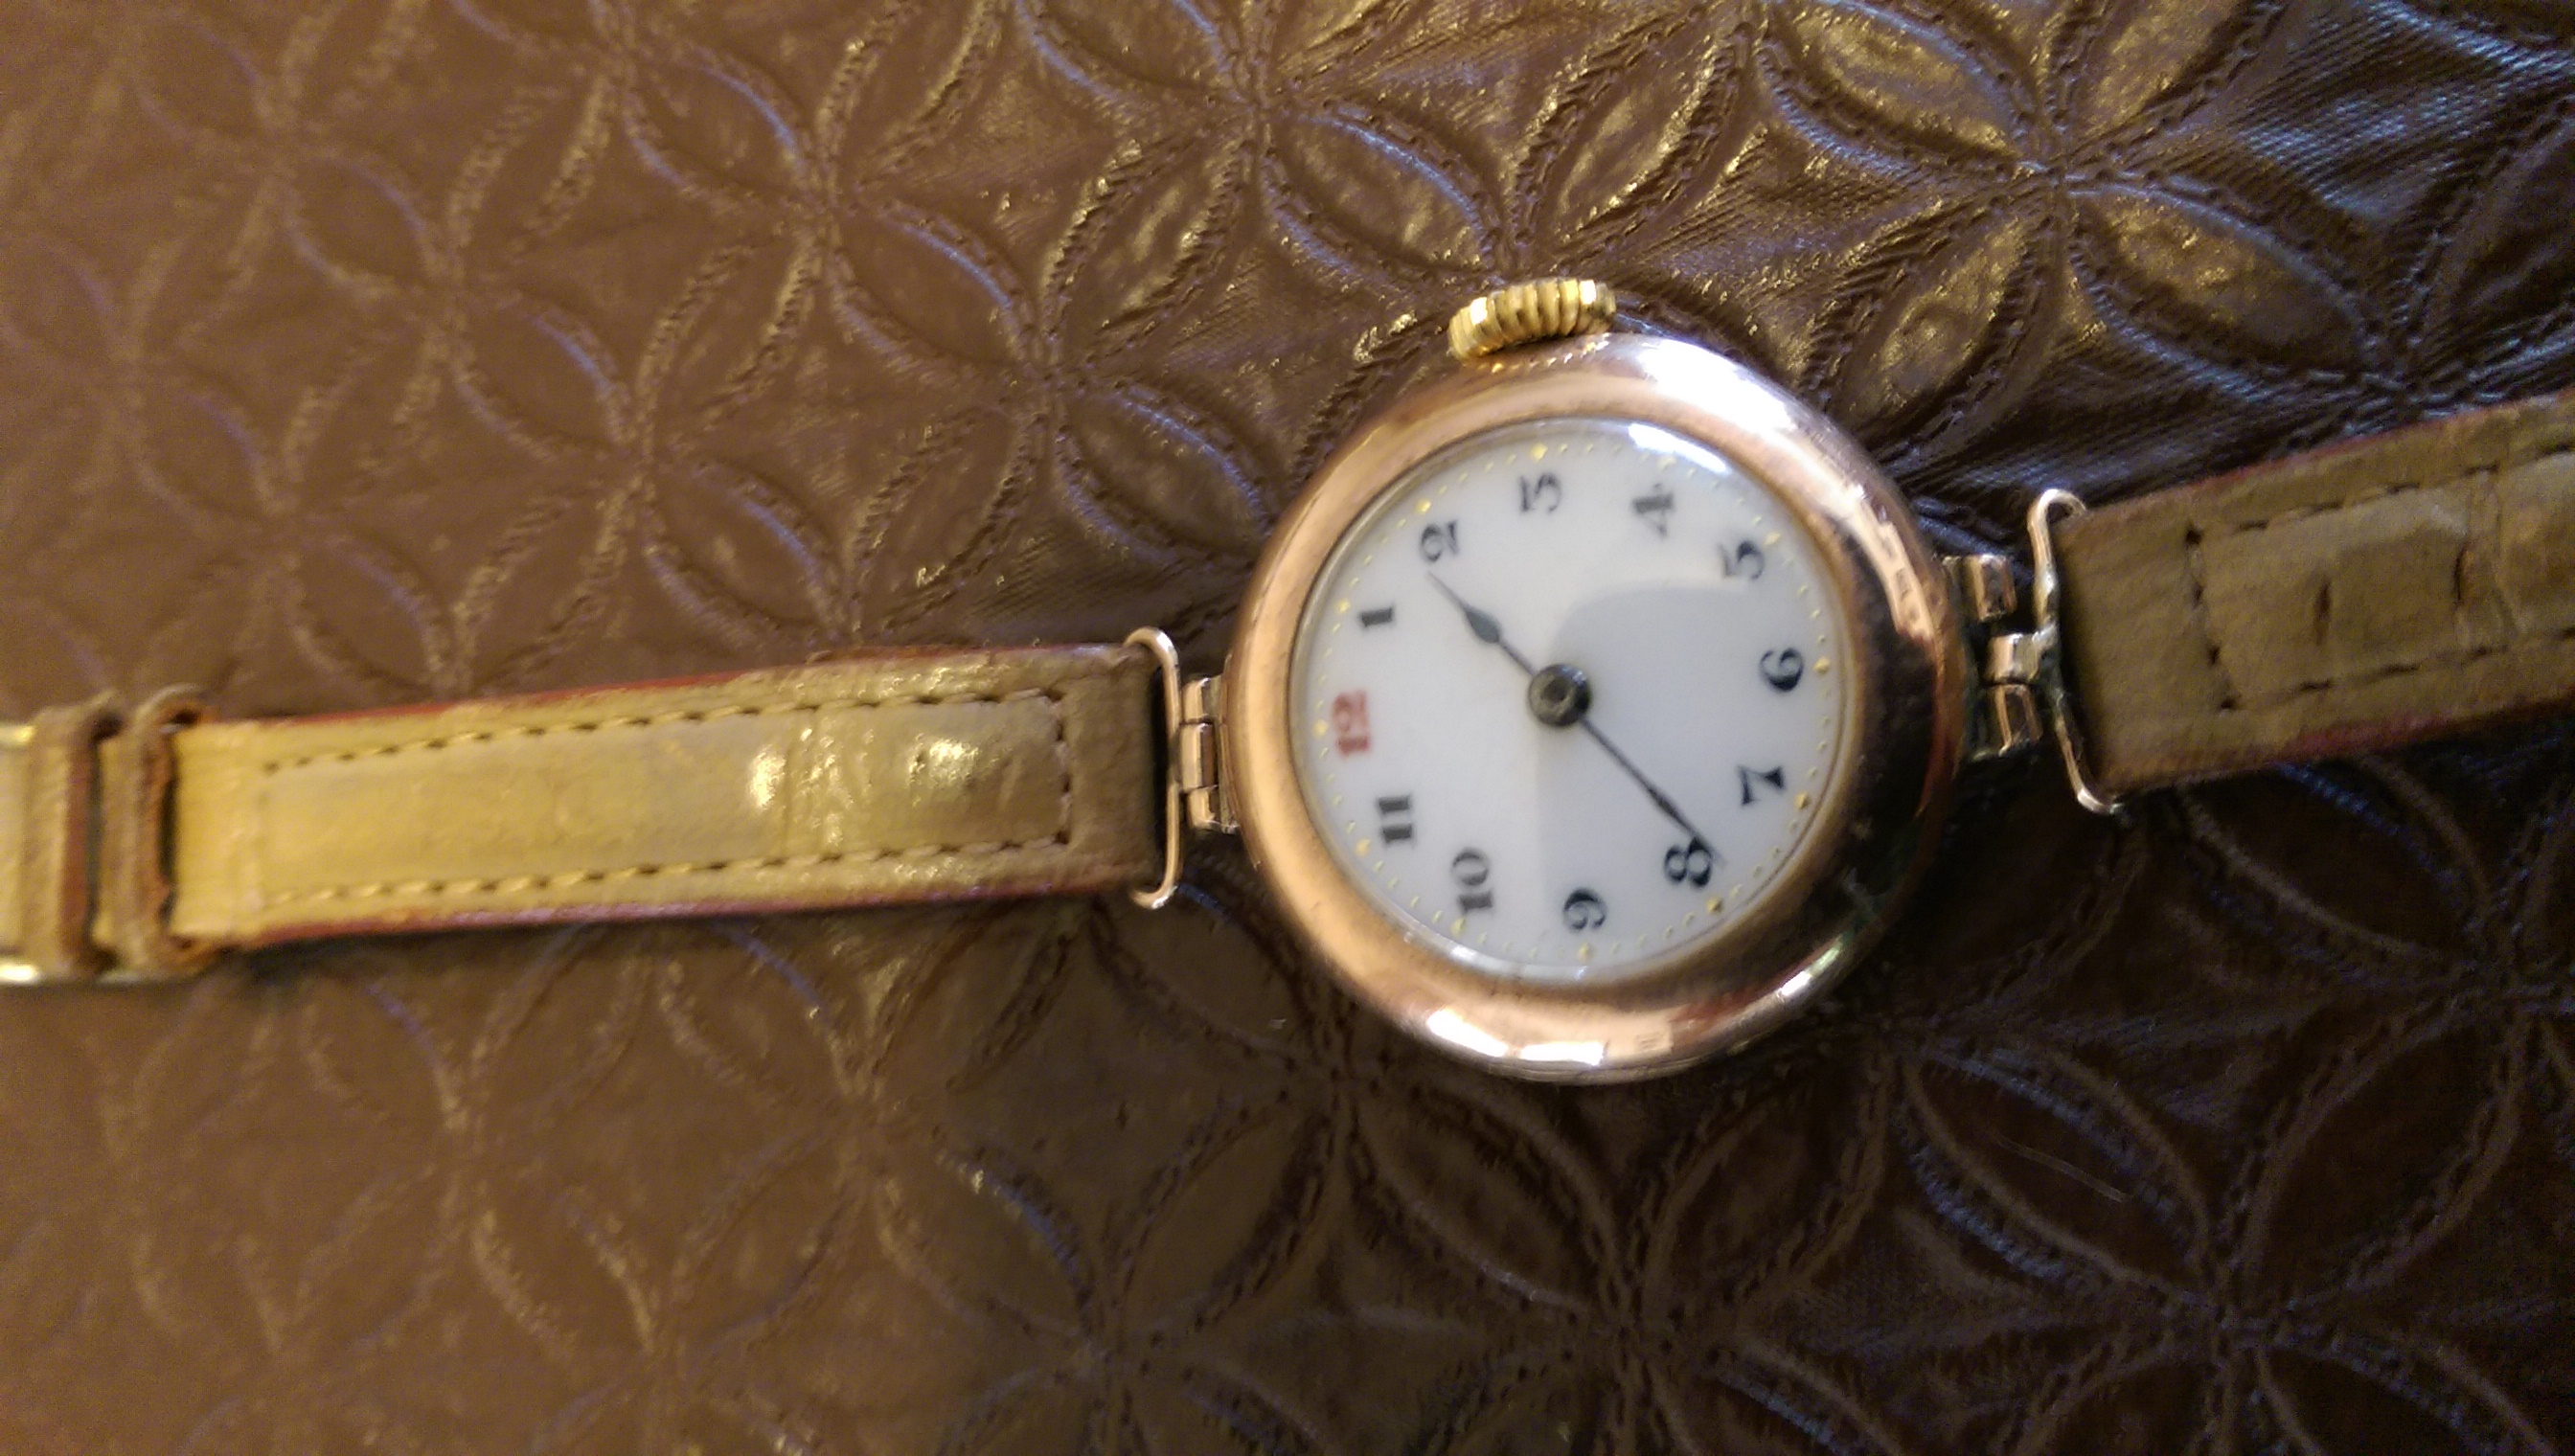 CLEMENTINA MARSHALL ROSE GOLD WATCH A GIFT FROM GRATEFULL SYDNEY HOSPITAL NURSES GIVEN TO CLEMENTINA